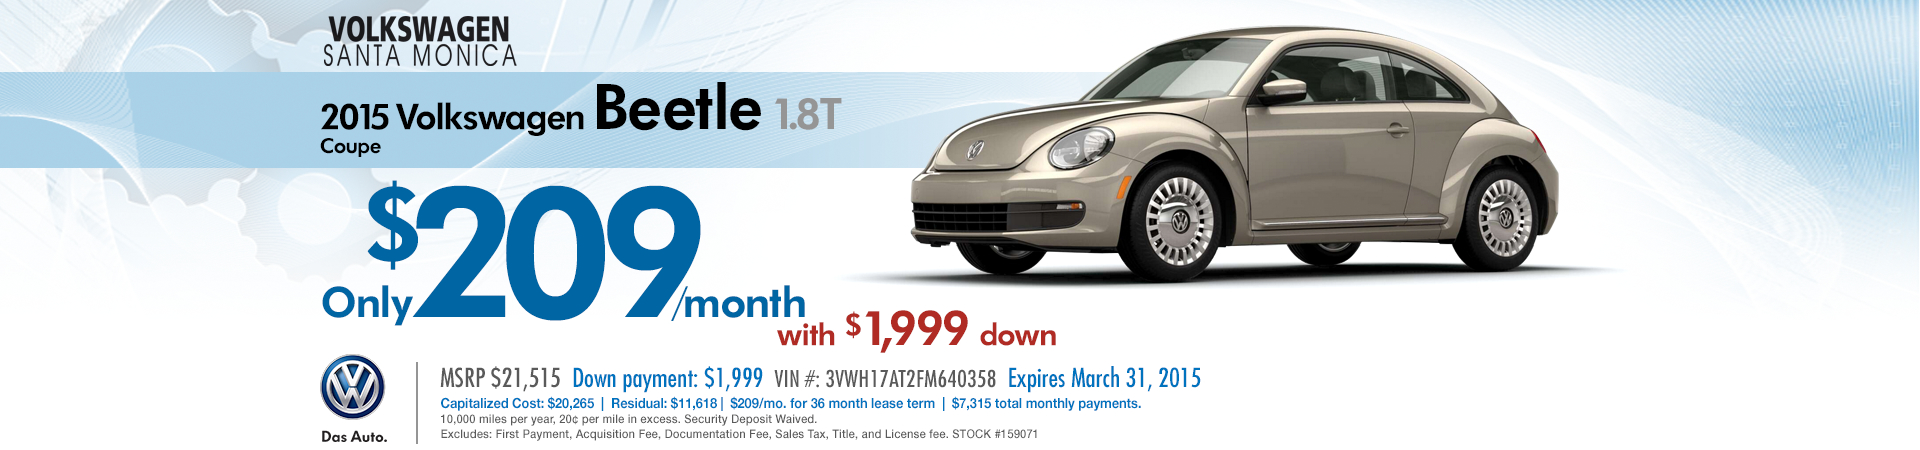 New 2015 VW Beetle 1.8T Coupe Low Payment Lease Special serving Santa Monica, California